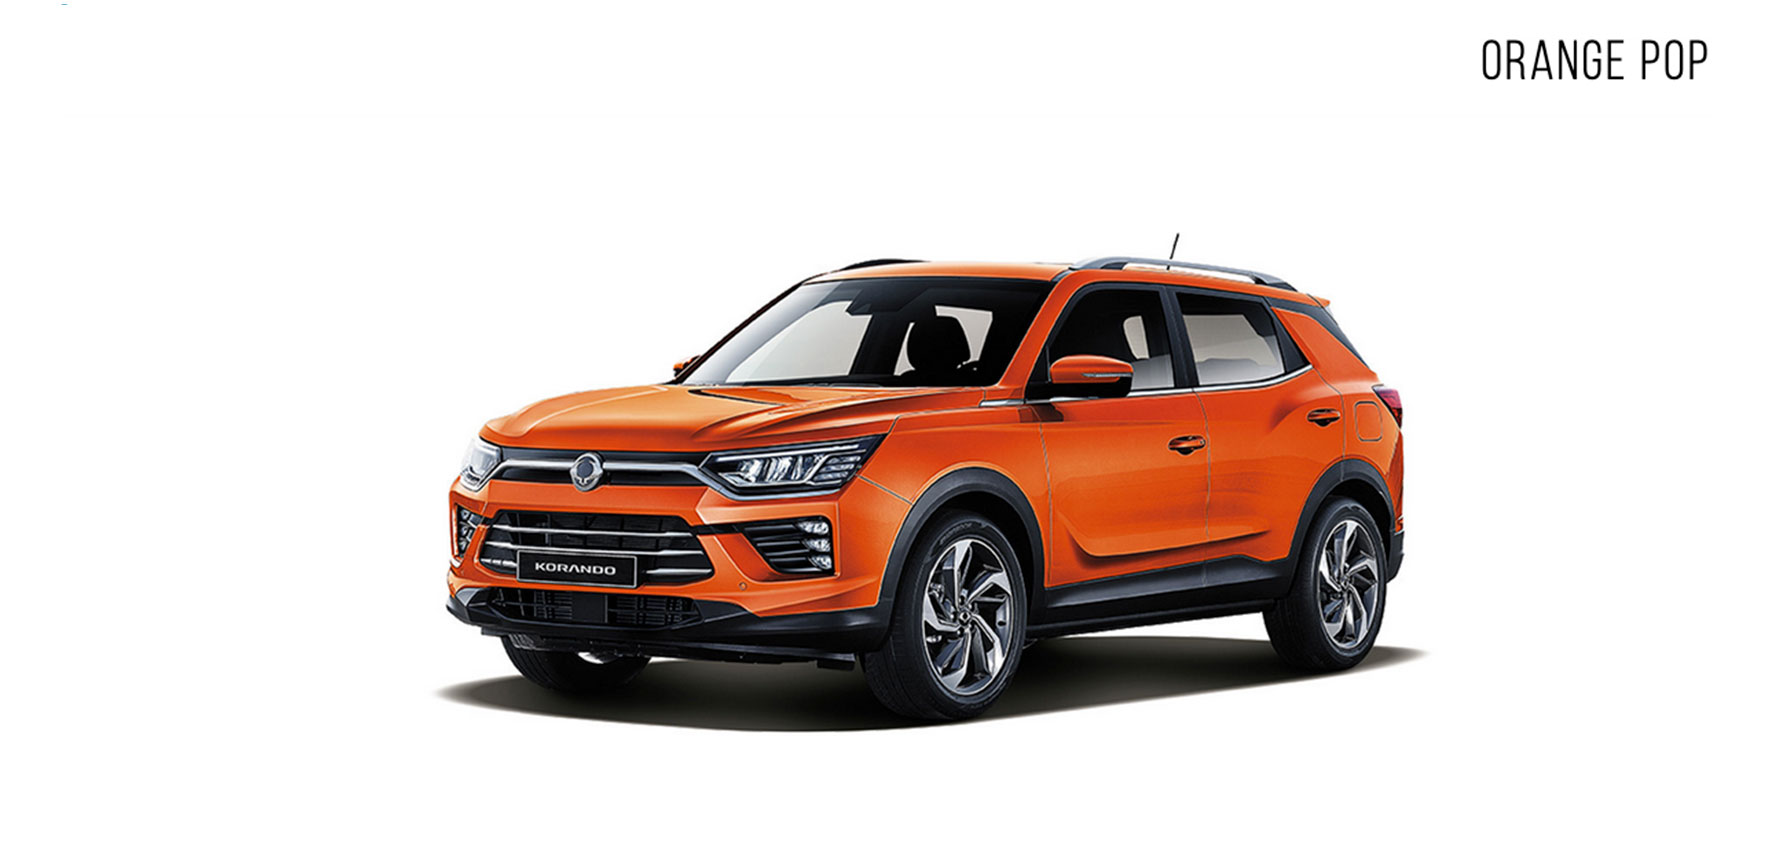 2-orange-pop-nuovo-korando-ssangyong-vercelli